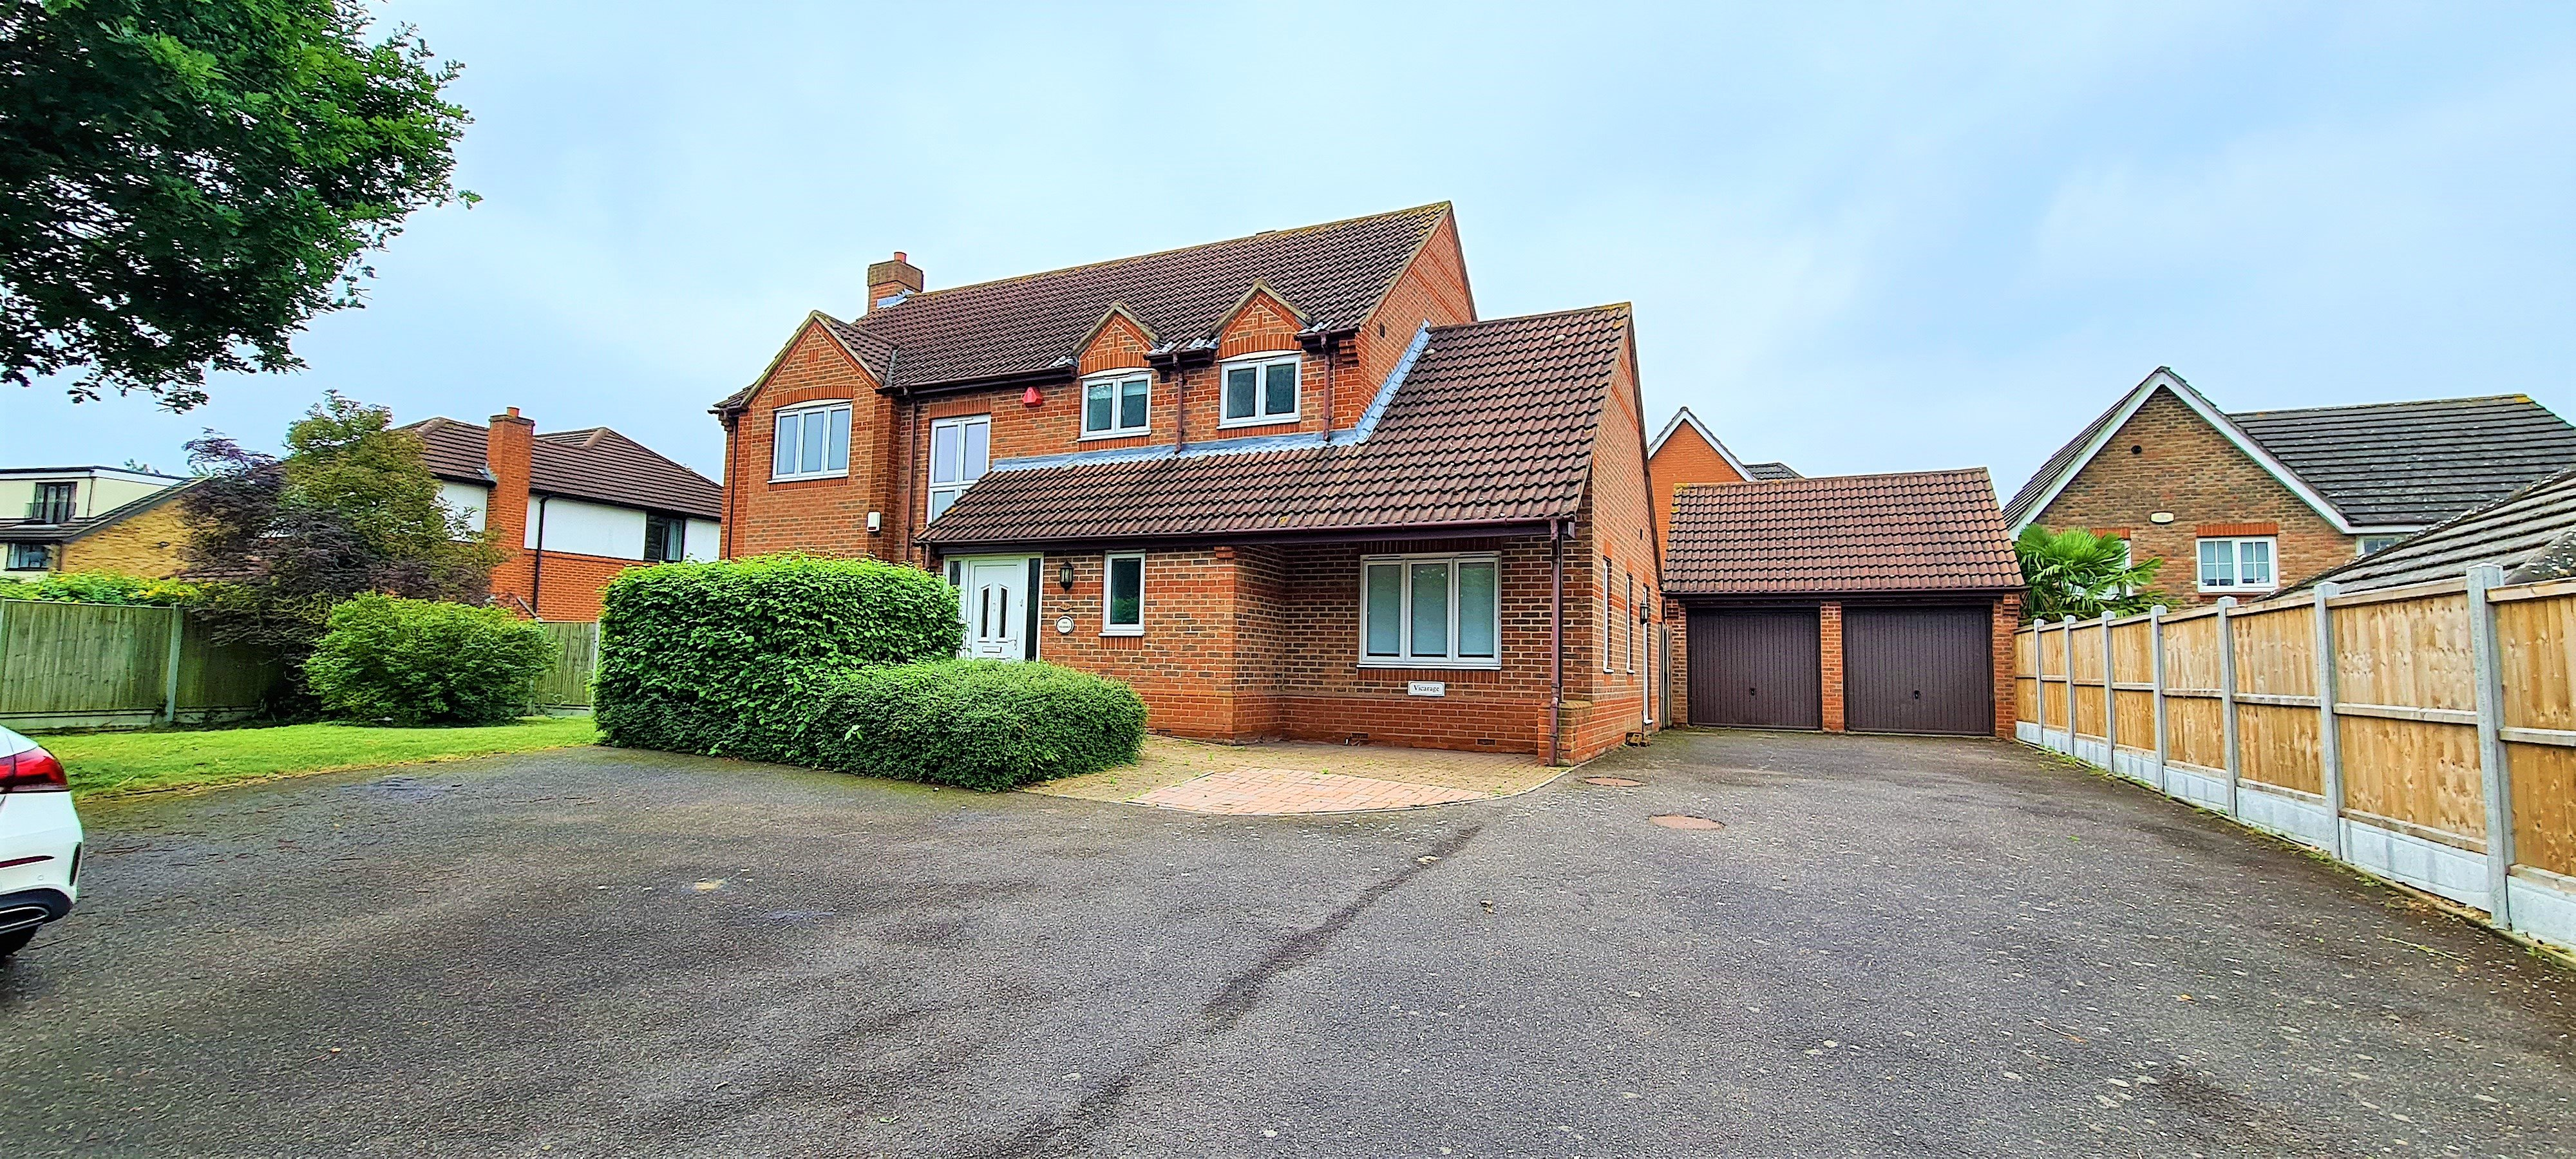 4 bed detached house to rent in Chafford Hundred, Grays, RM16